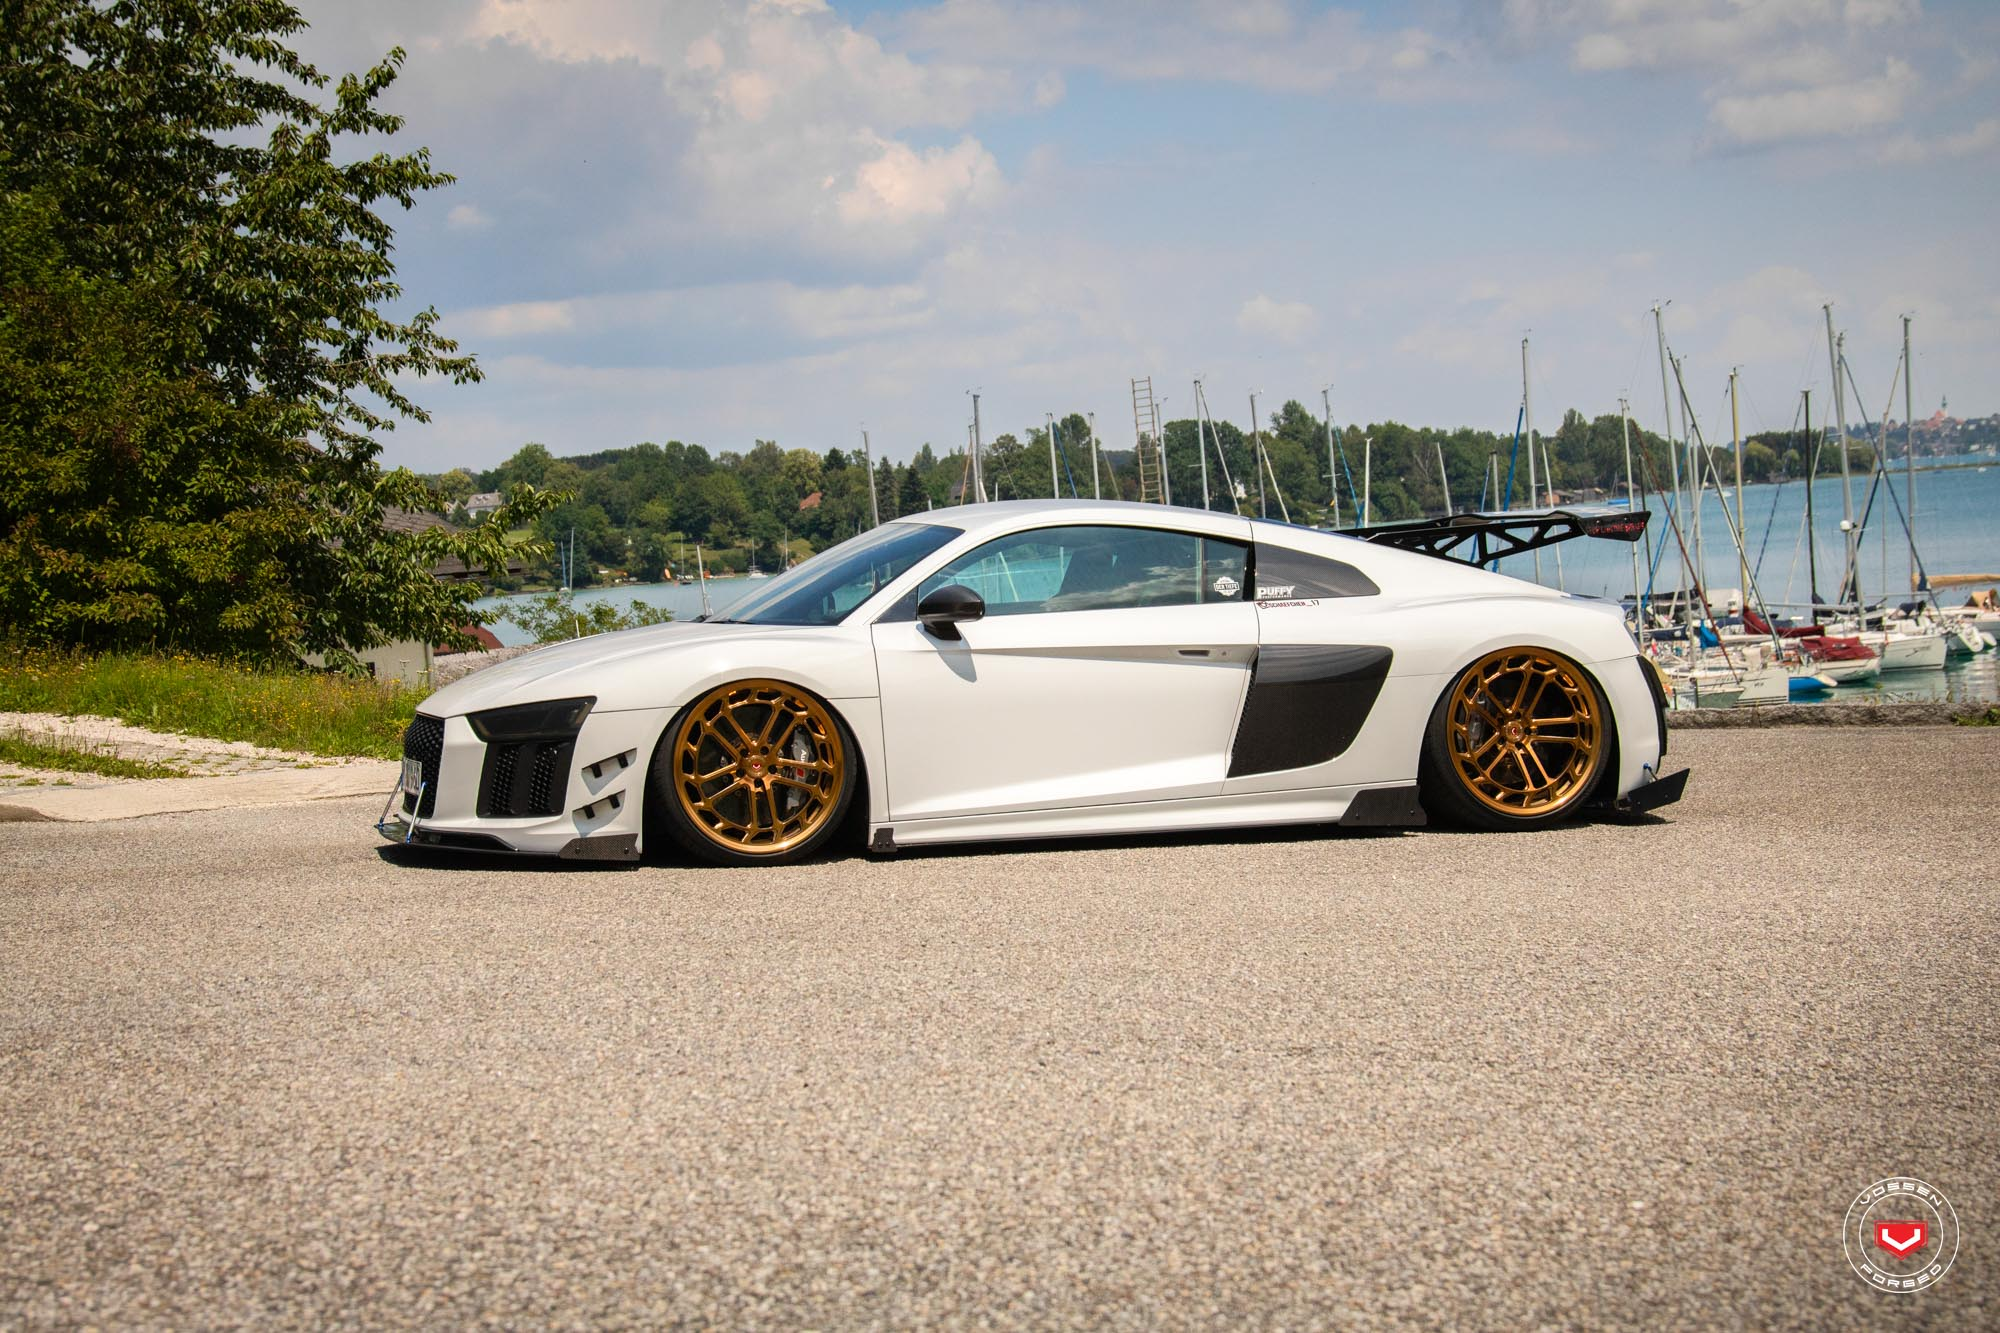 Audi R8 Gets Vossen Lc2 C1 Gold Wheels And Racing Body Kit